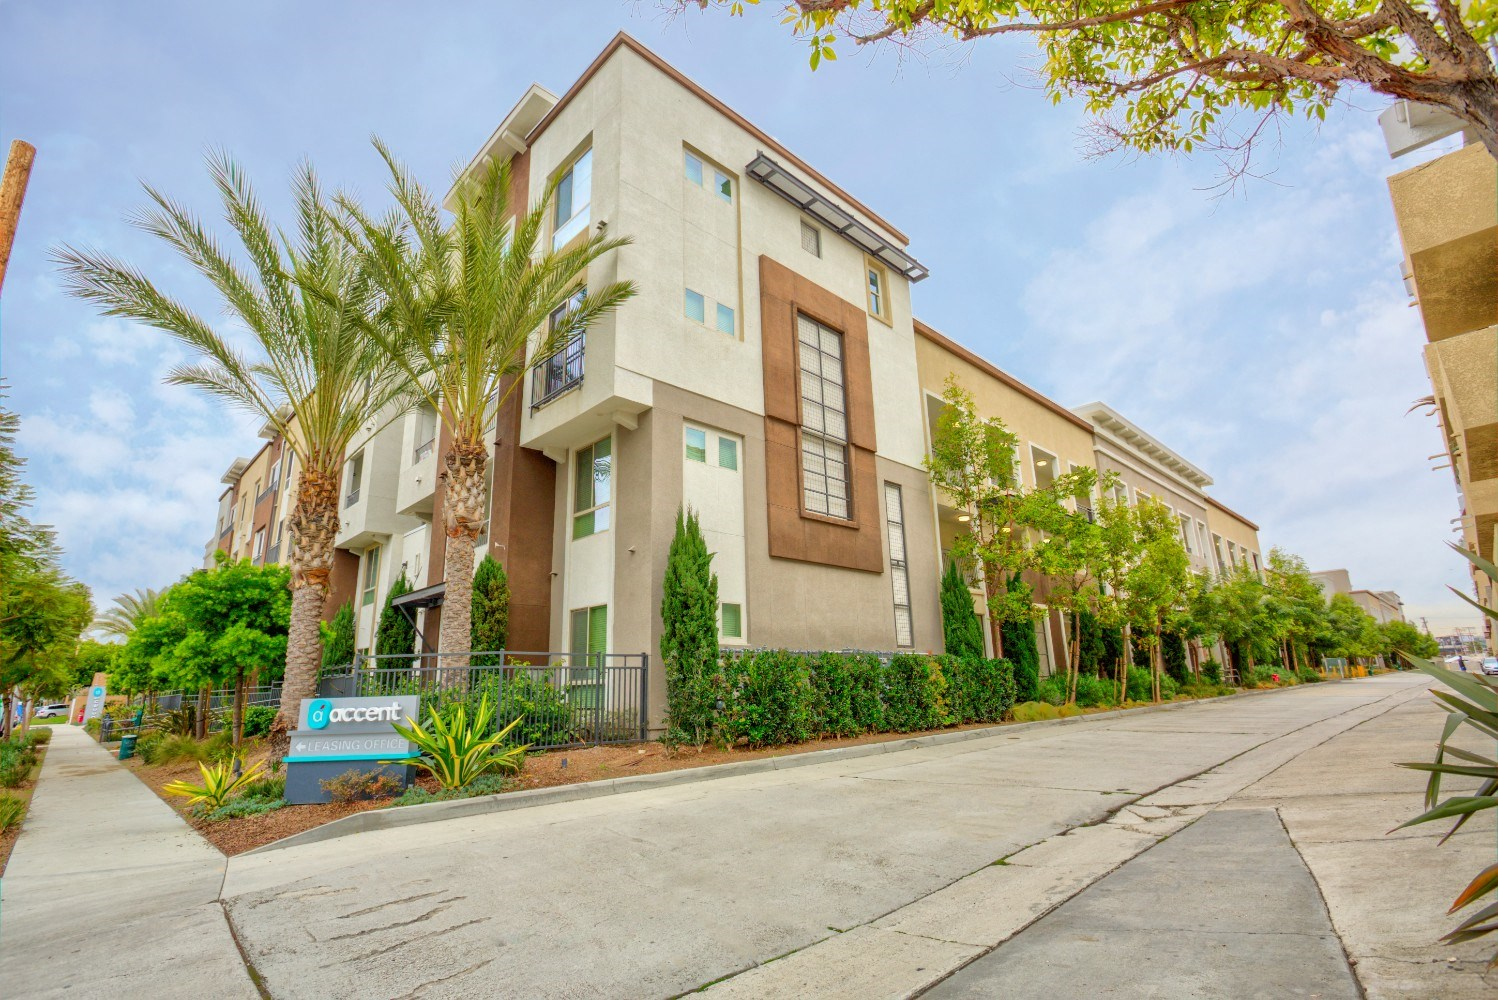 Welcome to Accent apartments in Los Angeles, Playa Vista, 90066